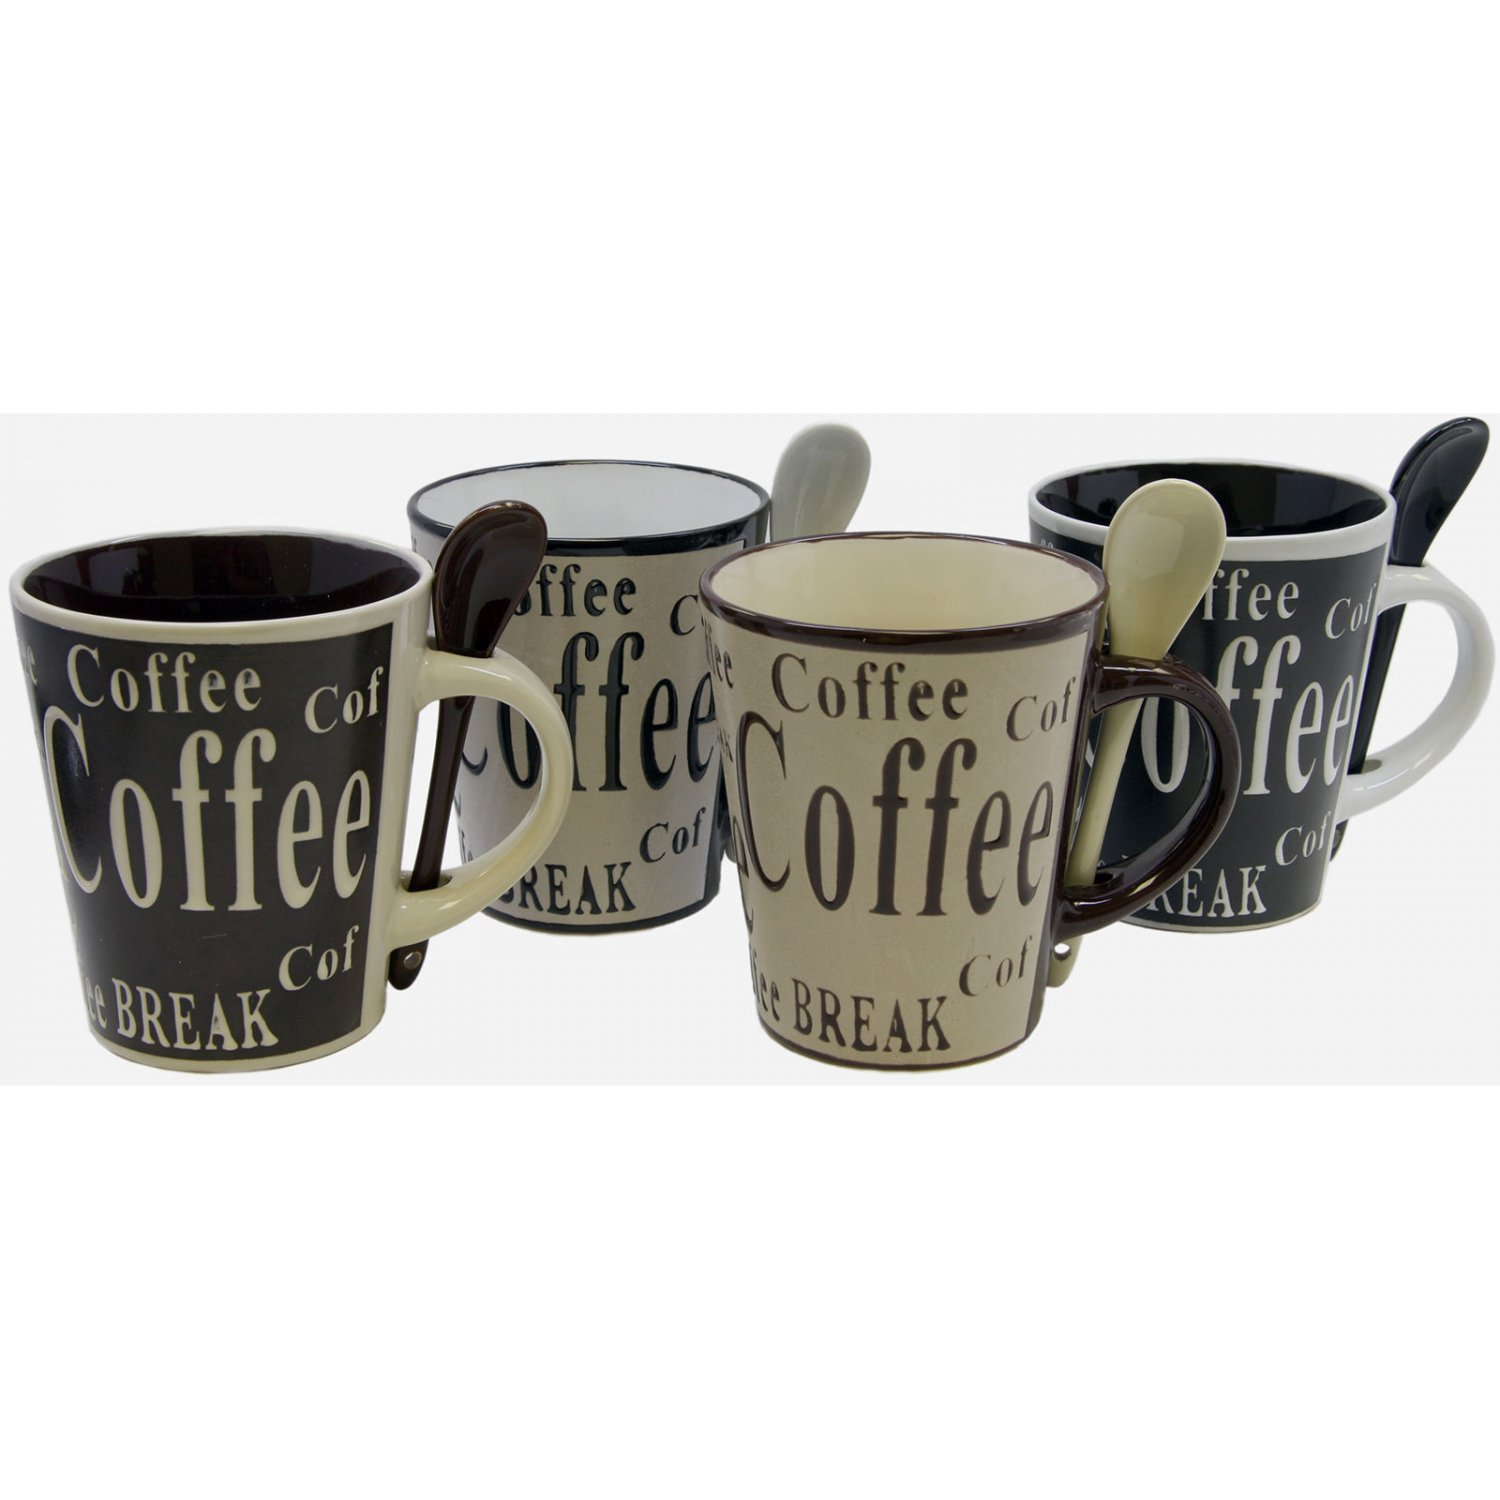 Gibson Bareggio 4 Designs Total 8 Piece Coffee Set with Spoons 4 Cups 4 Spoons